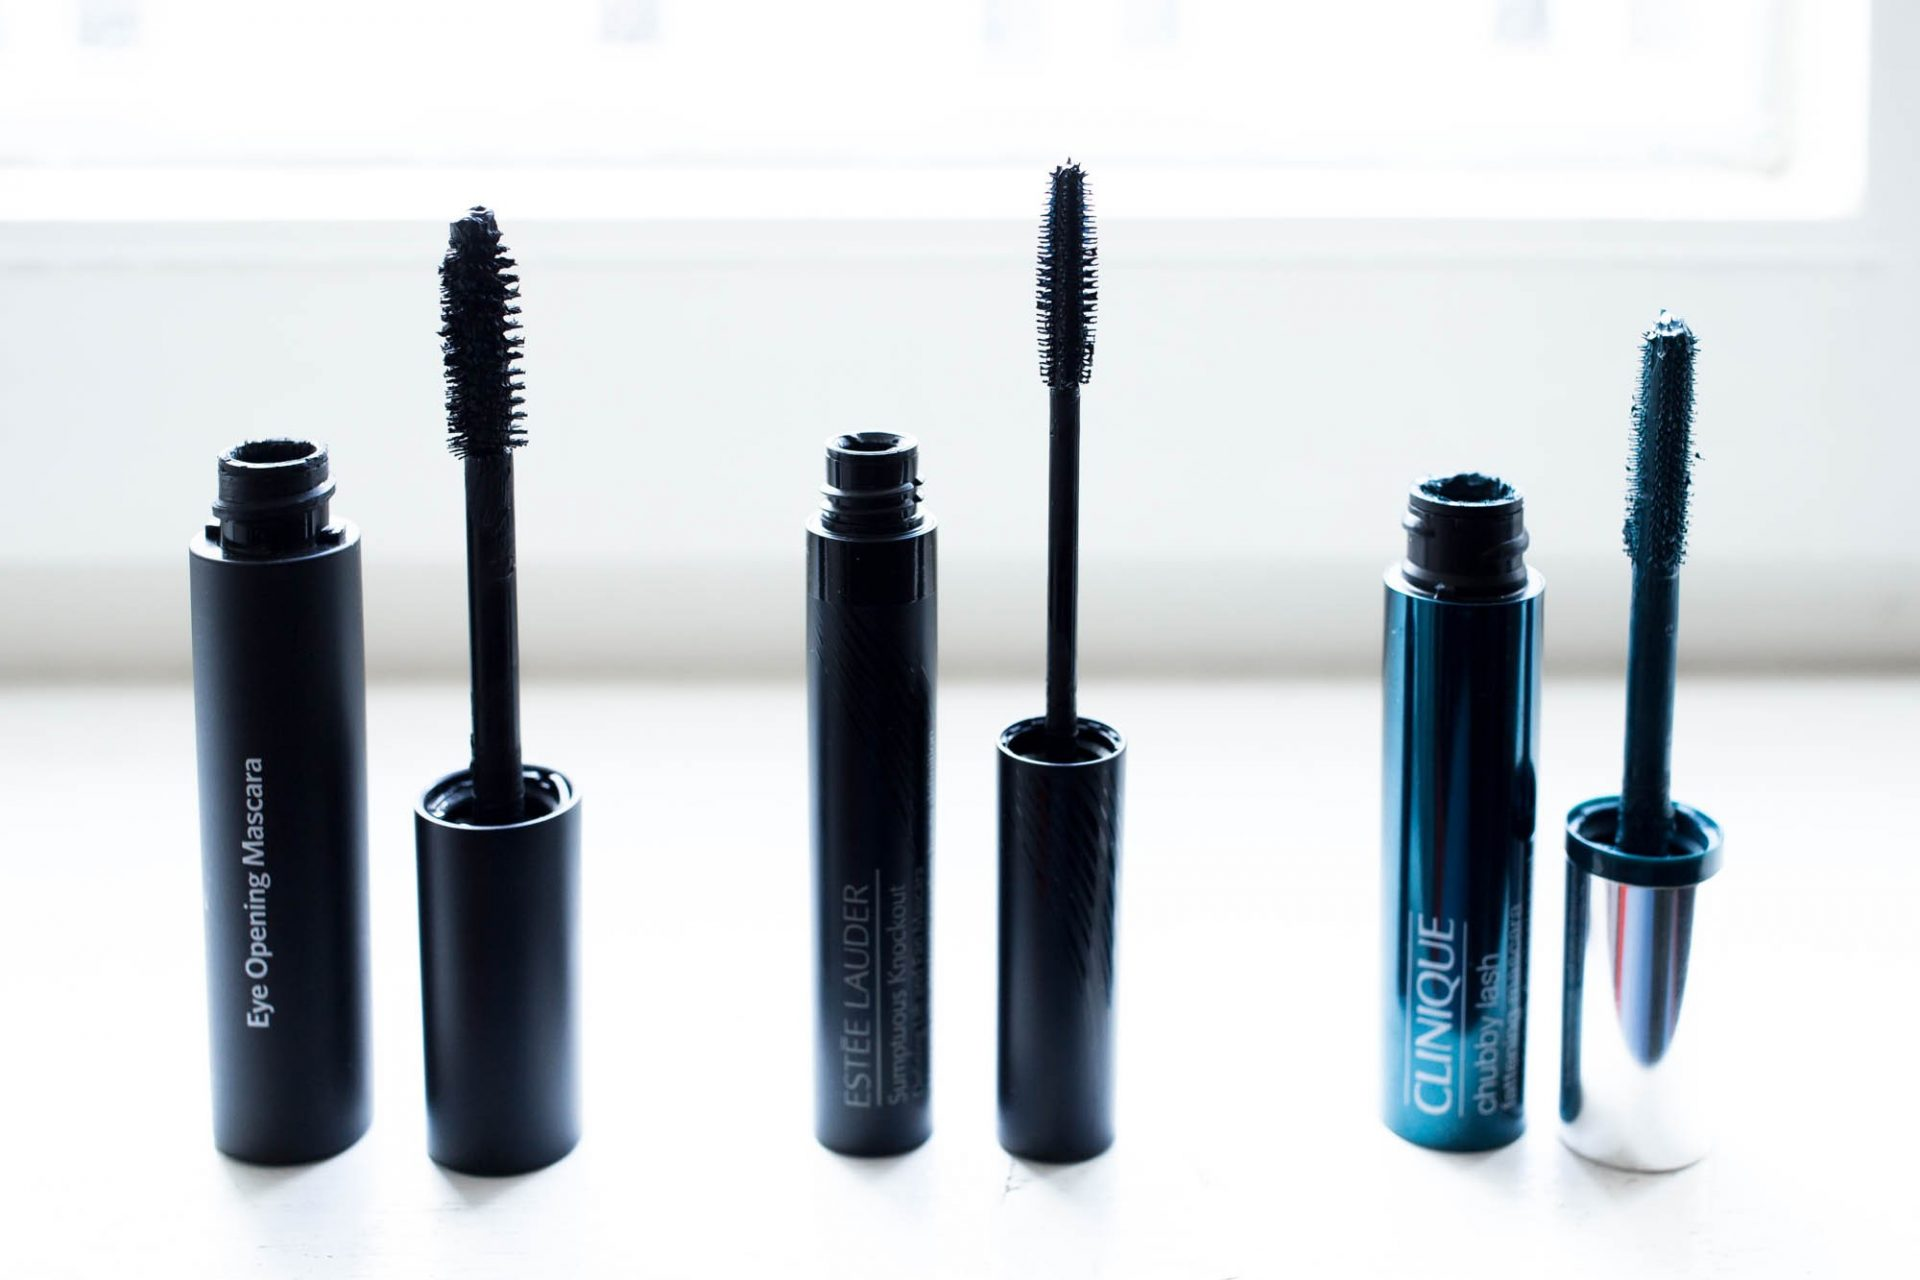 How to Choose Mascara? Go for Quality, Good Wand & Nutrients